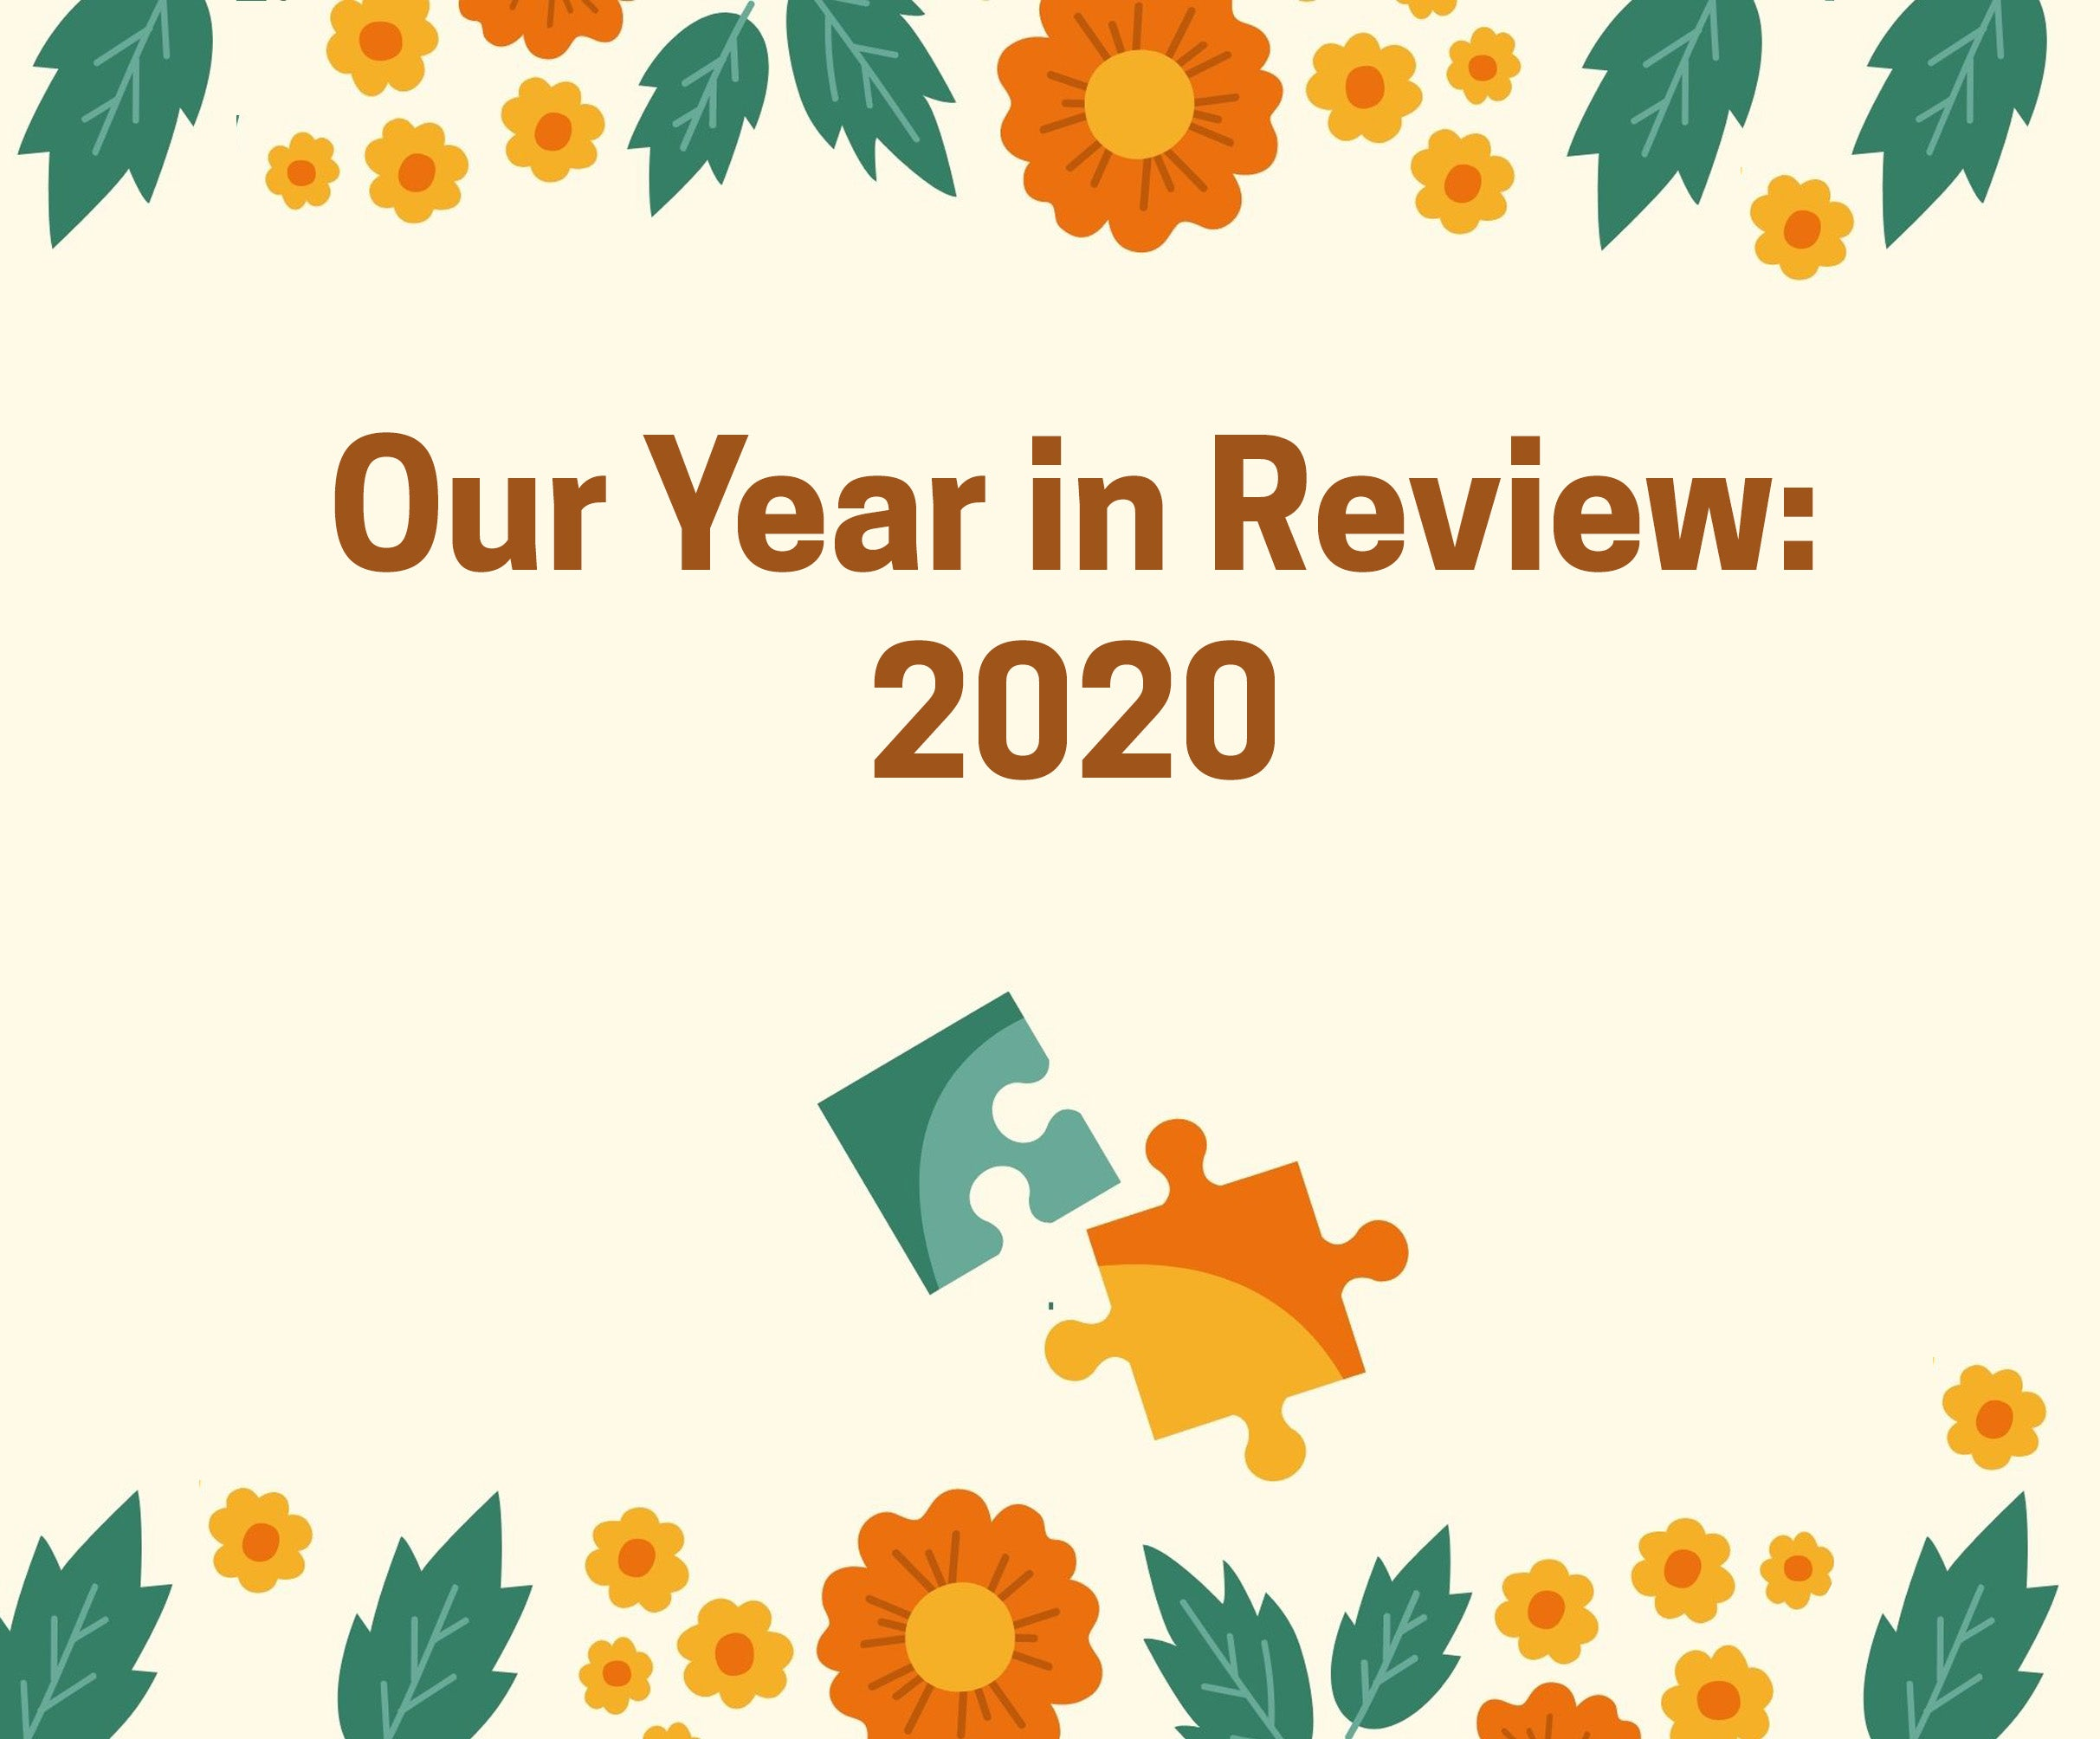 Our Year in Review: 2020